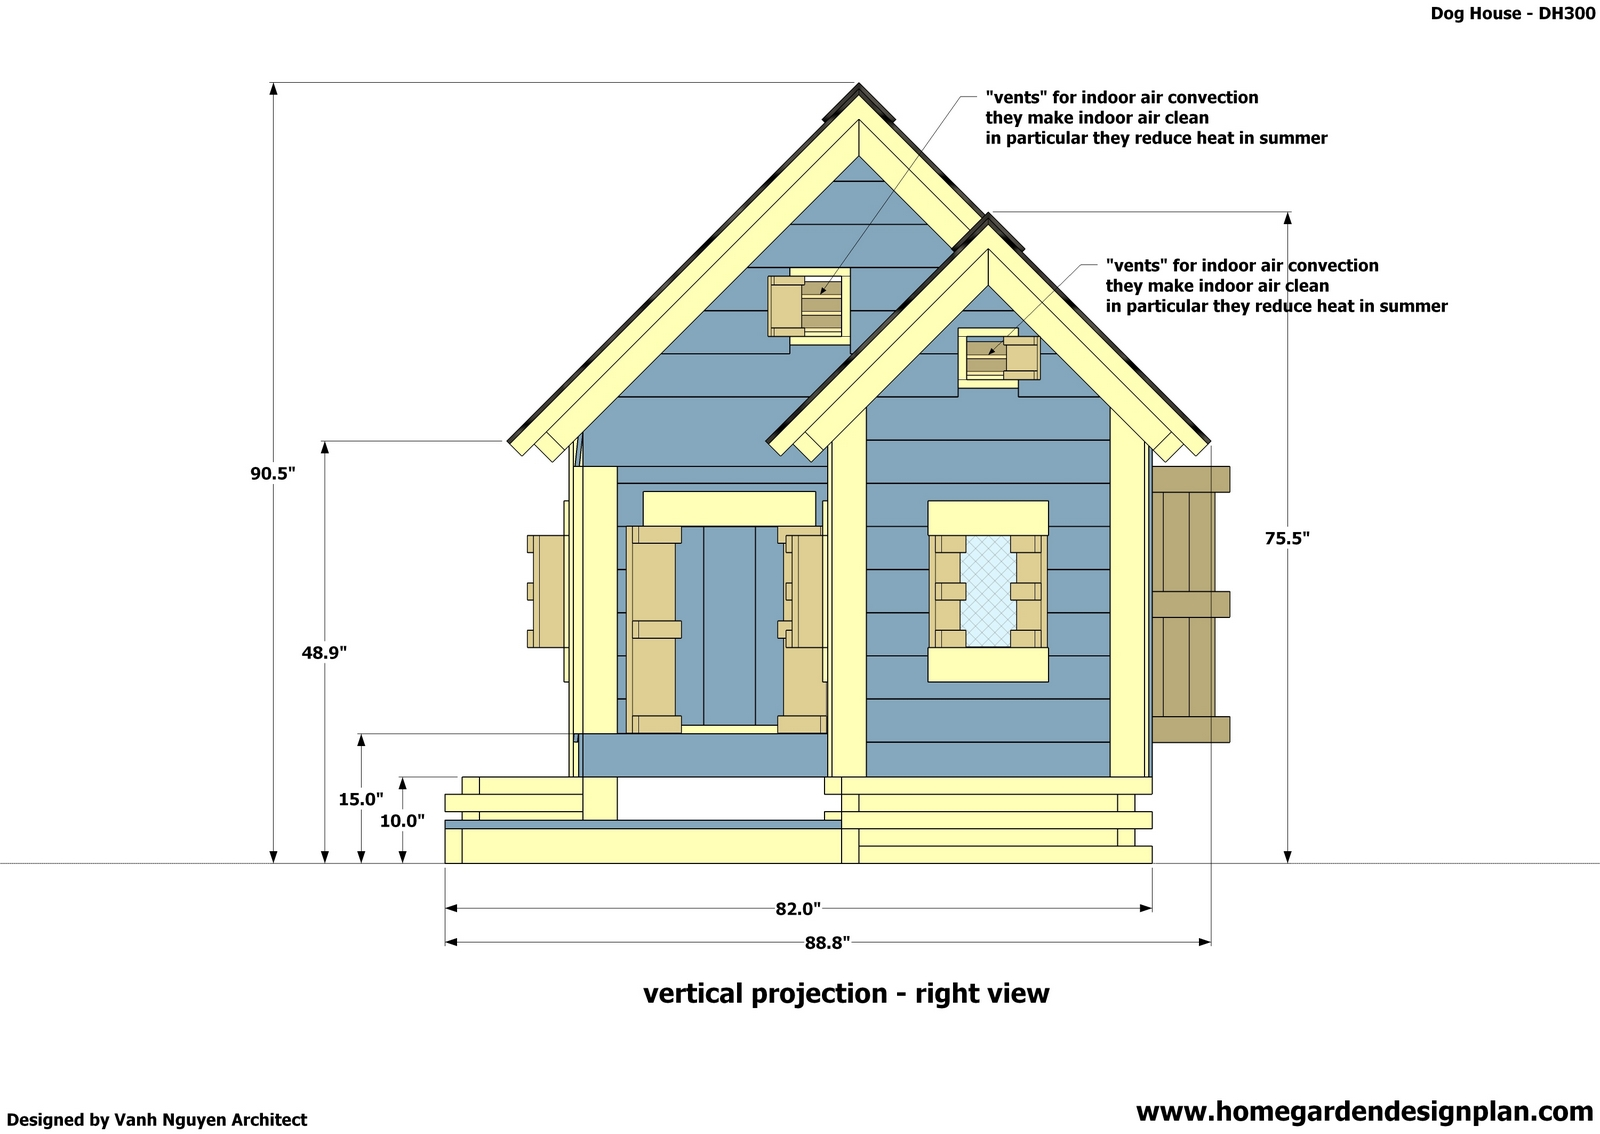 Home garden plans dh300 dog house plans free how to for House blueprints online